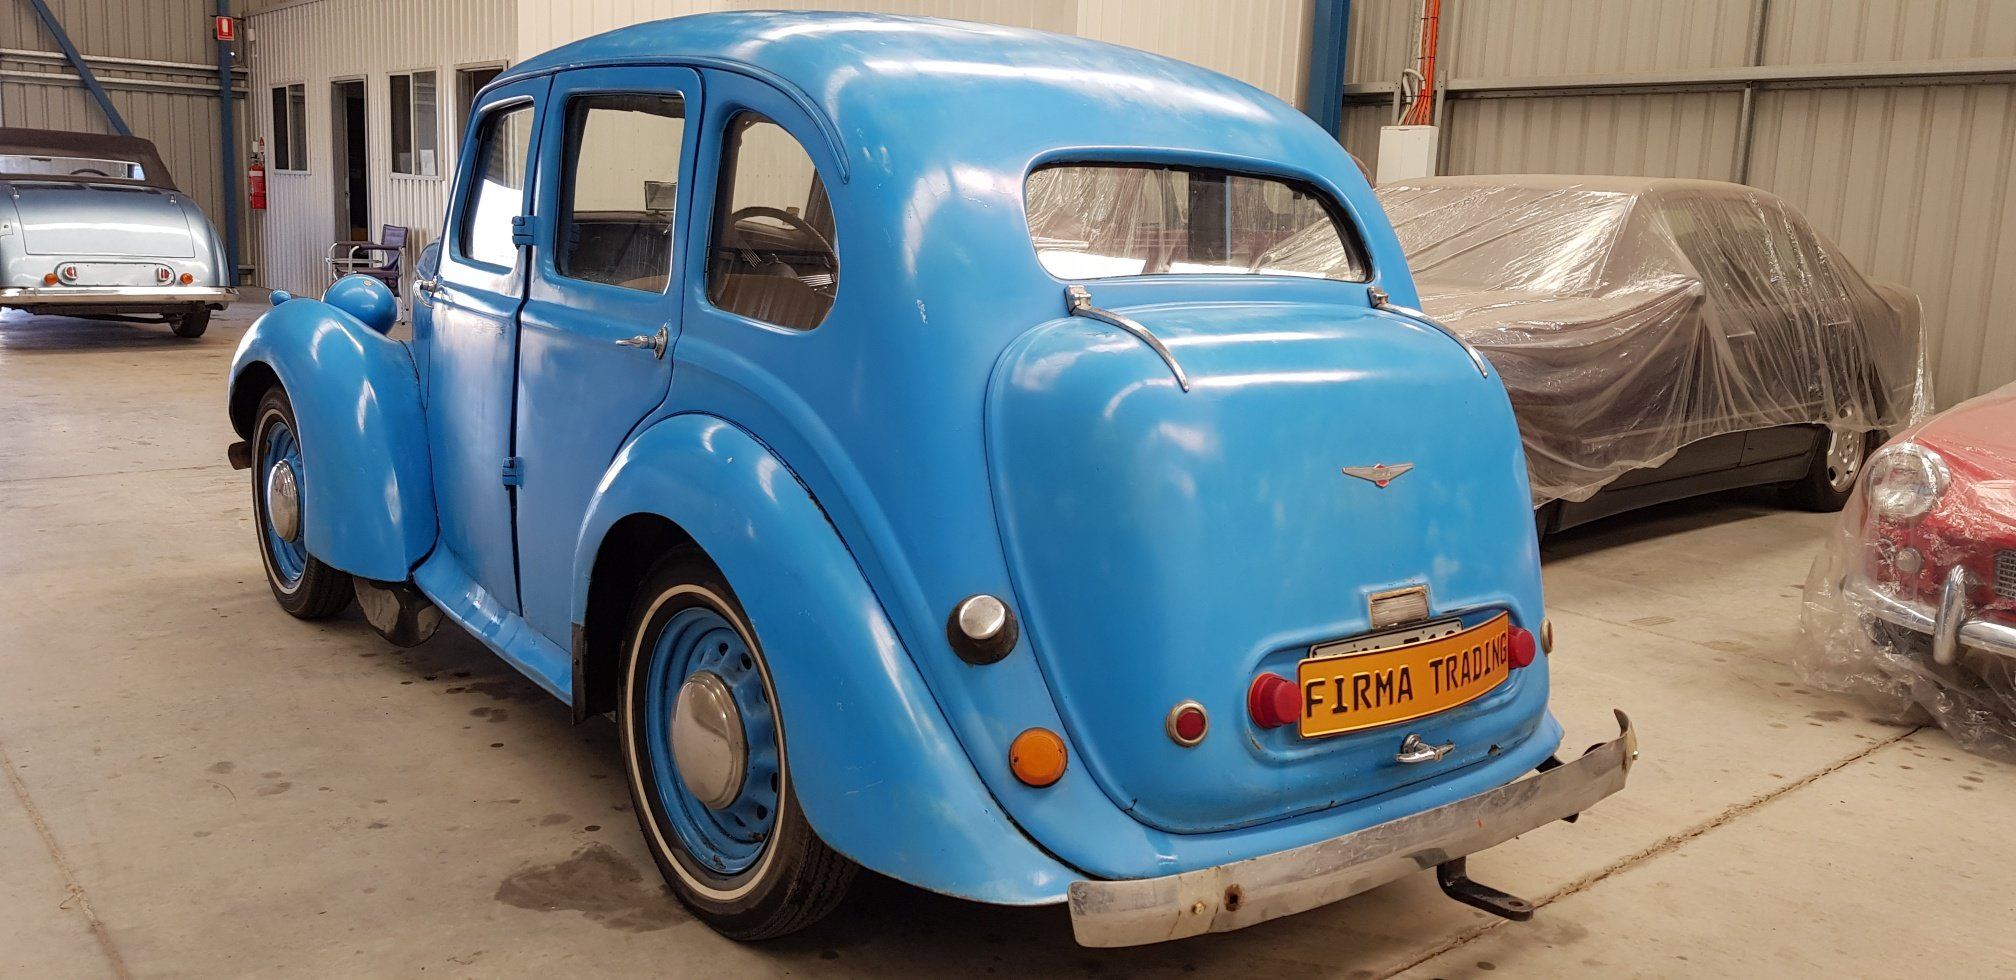 1946 Hillman Minx By Firma Trading Australia For Sale (picture 2 of 6)